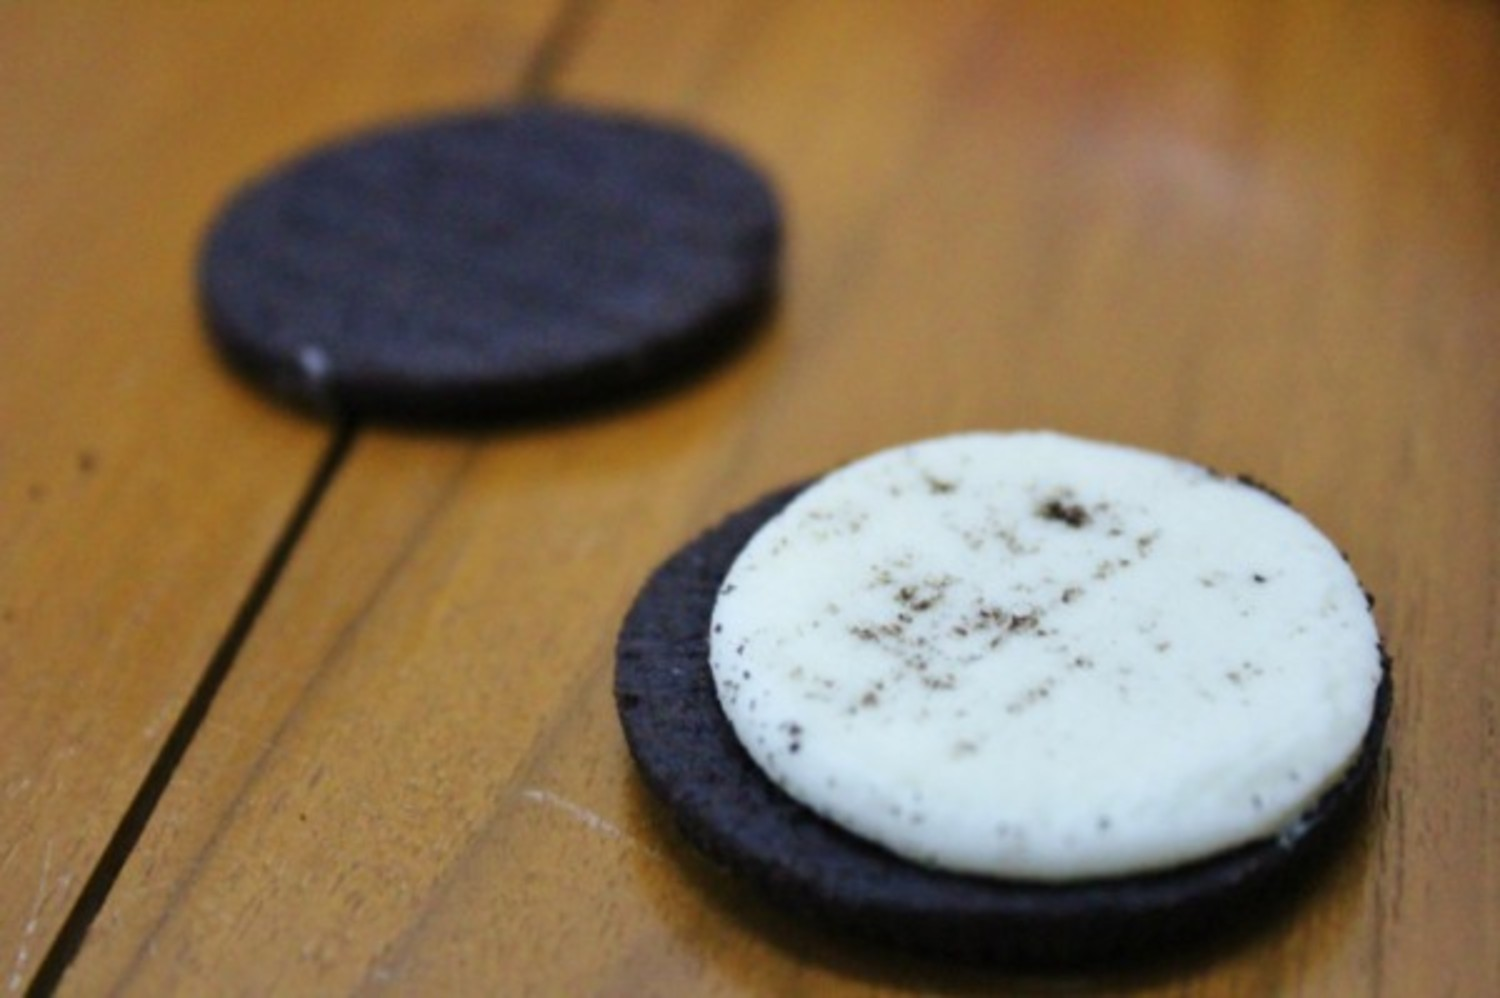 The world's favorite cookie. Delicious and full of Wonder for over years. Find Oreo games, videos, songs, and see how the Wonderfilled story goes!